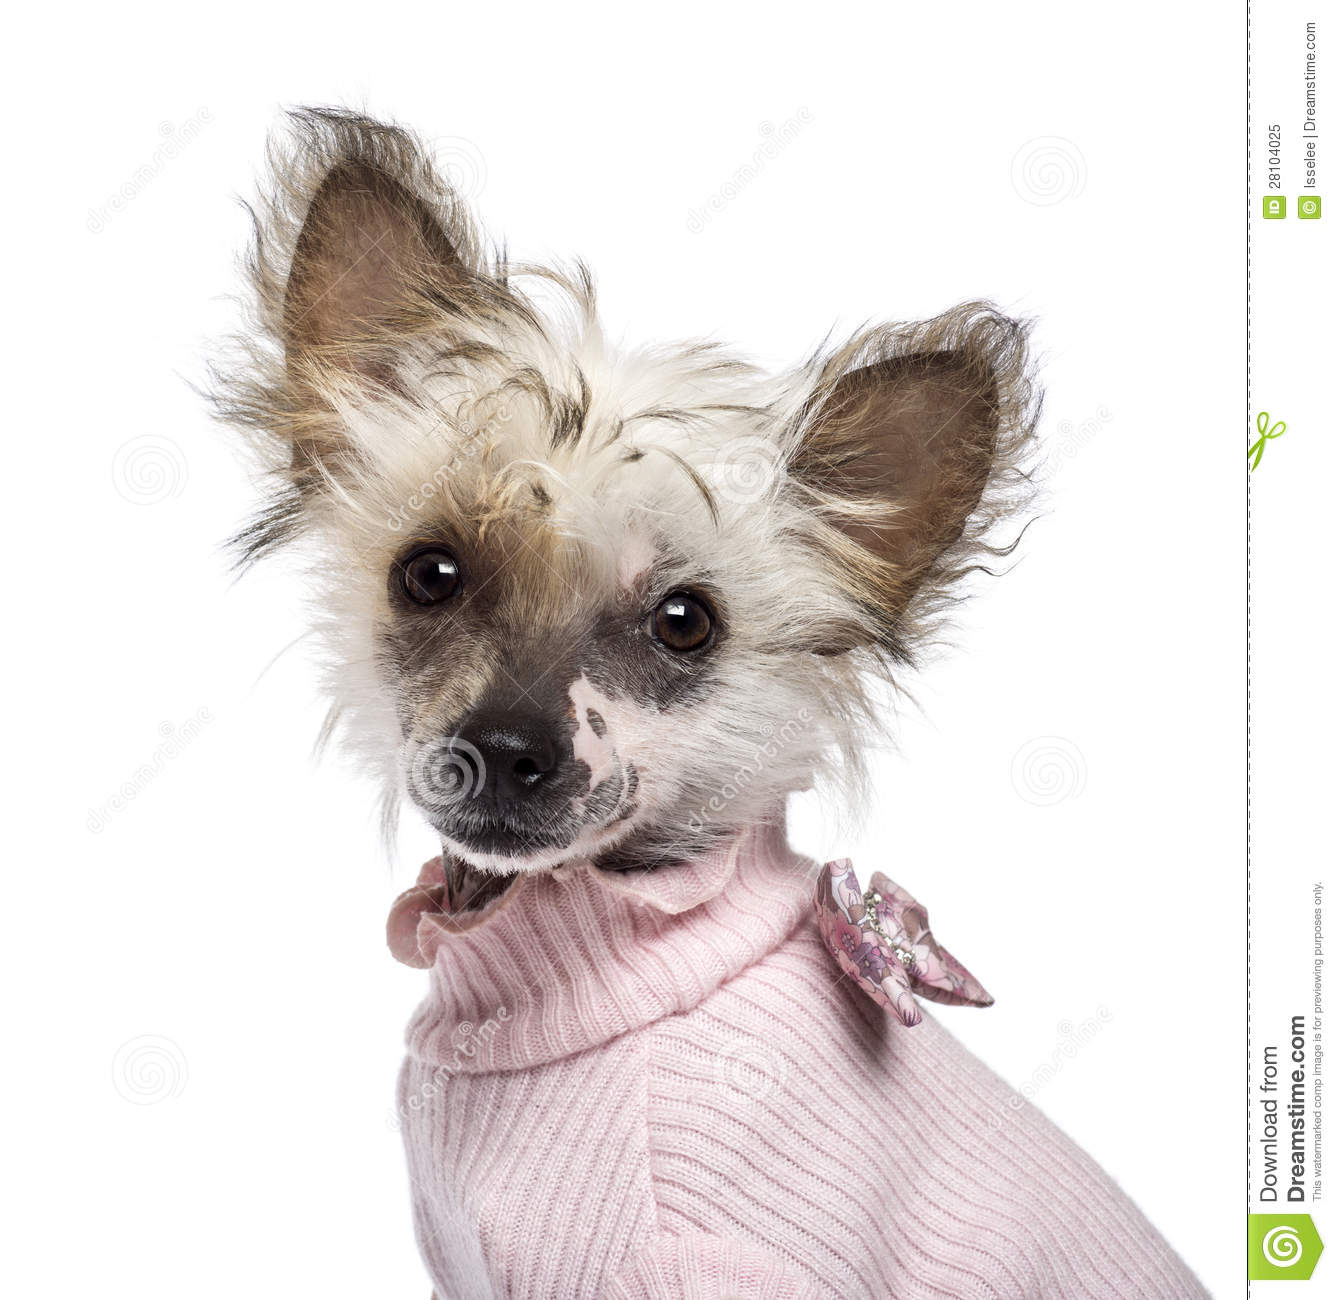 Chinese Crested 4 Months Chinese Crested Dog puppy  4